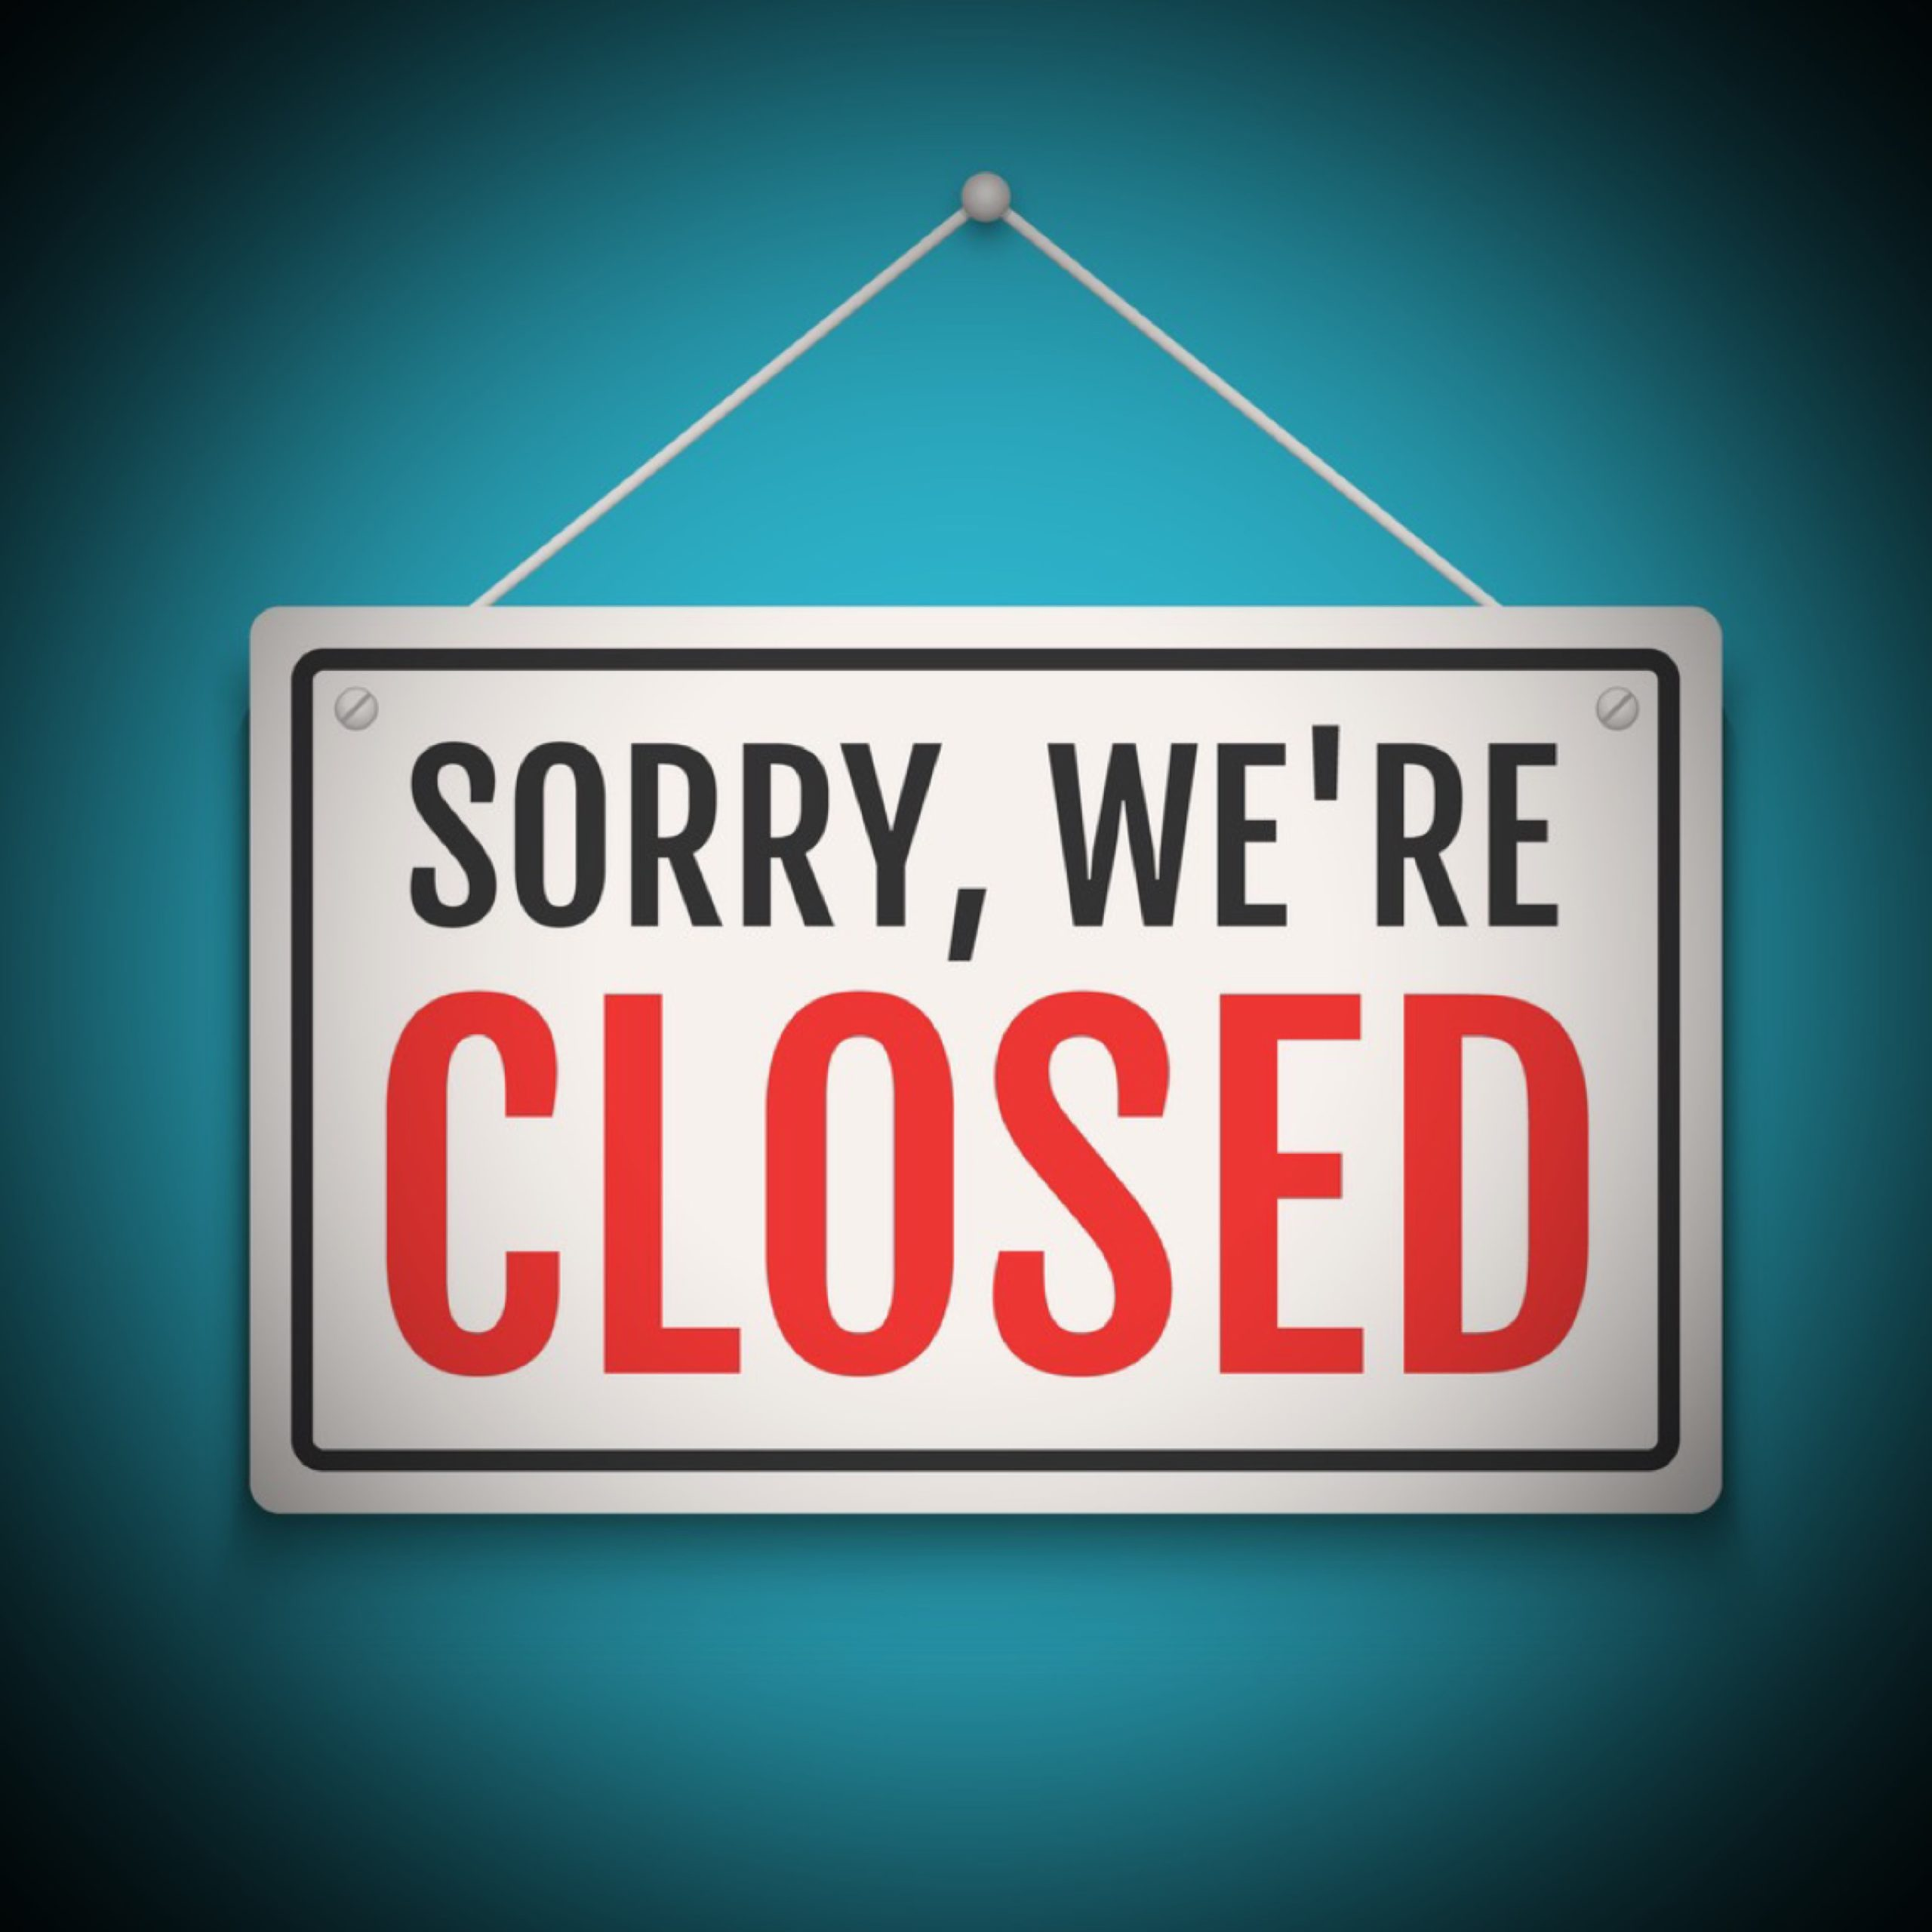 We are closed!